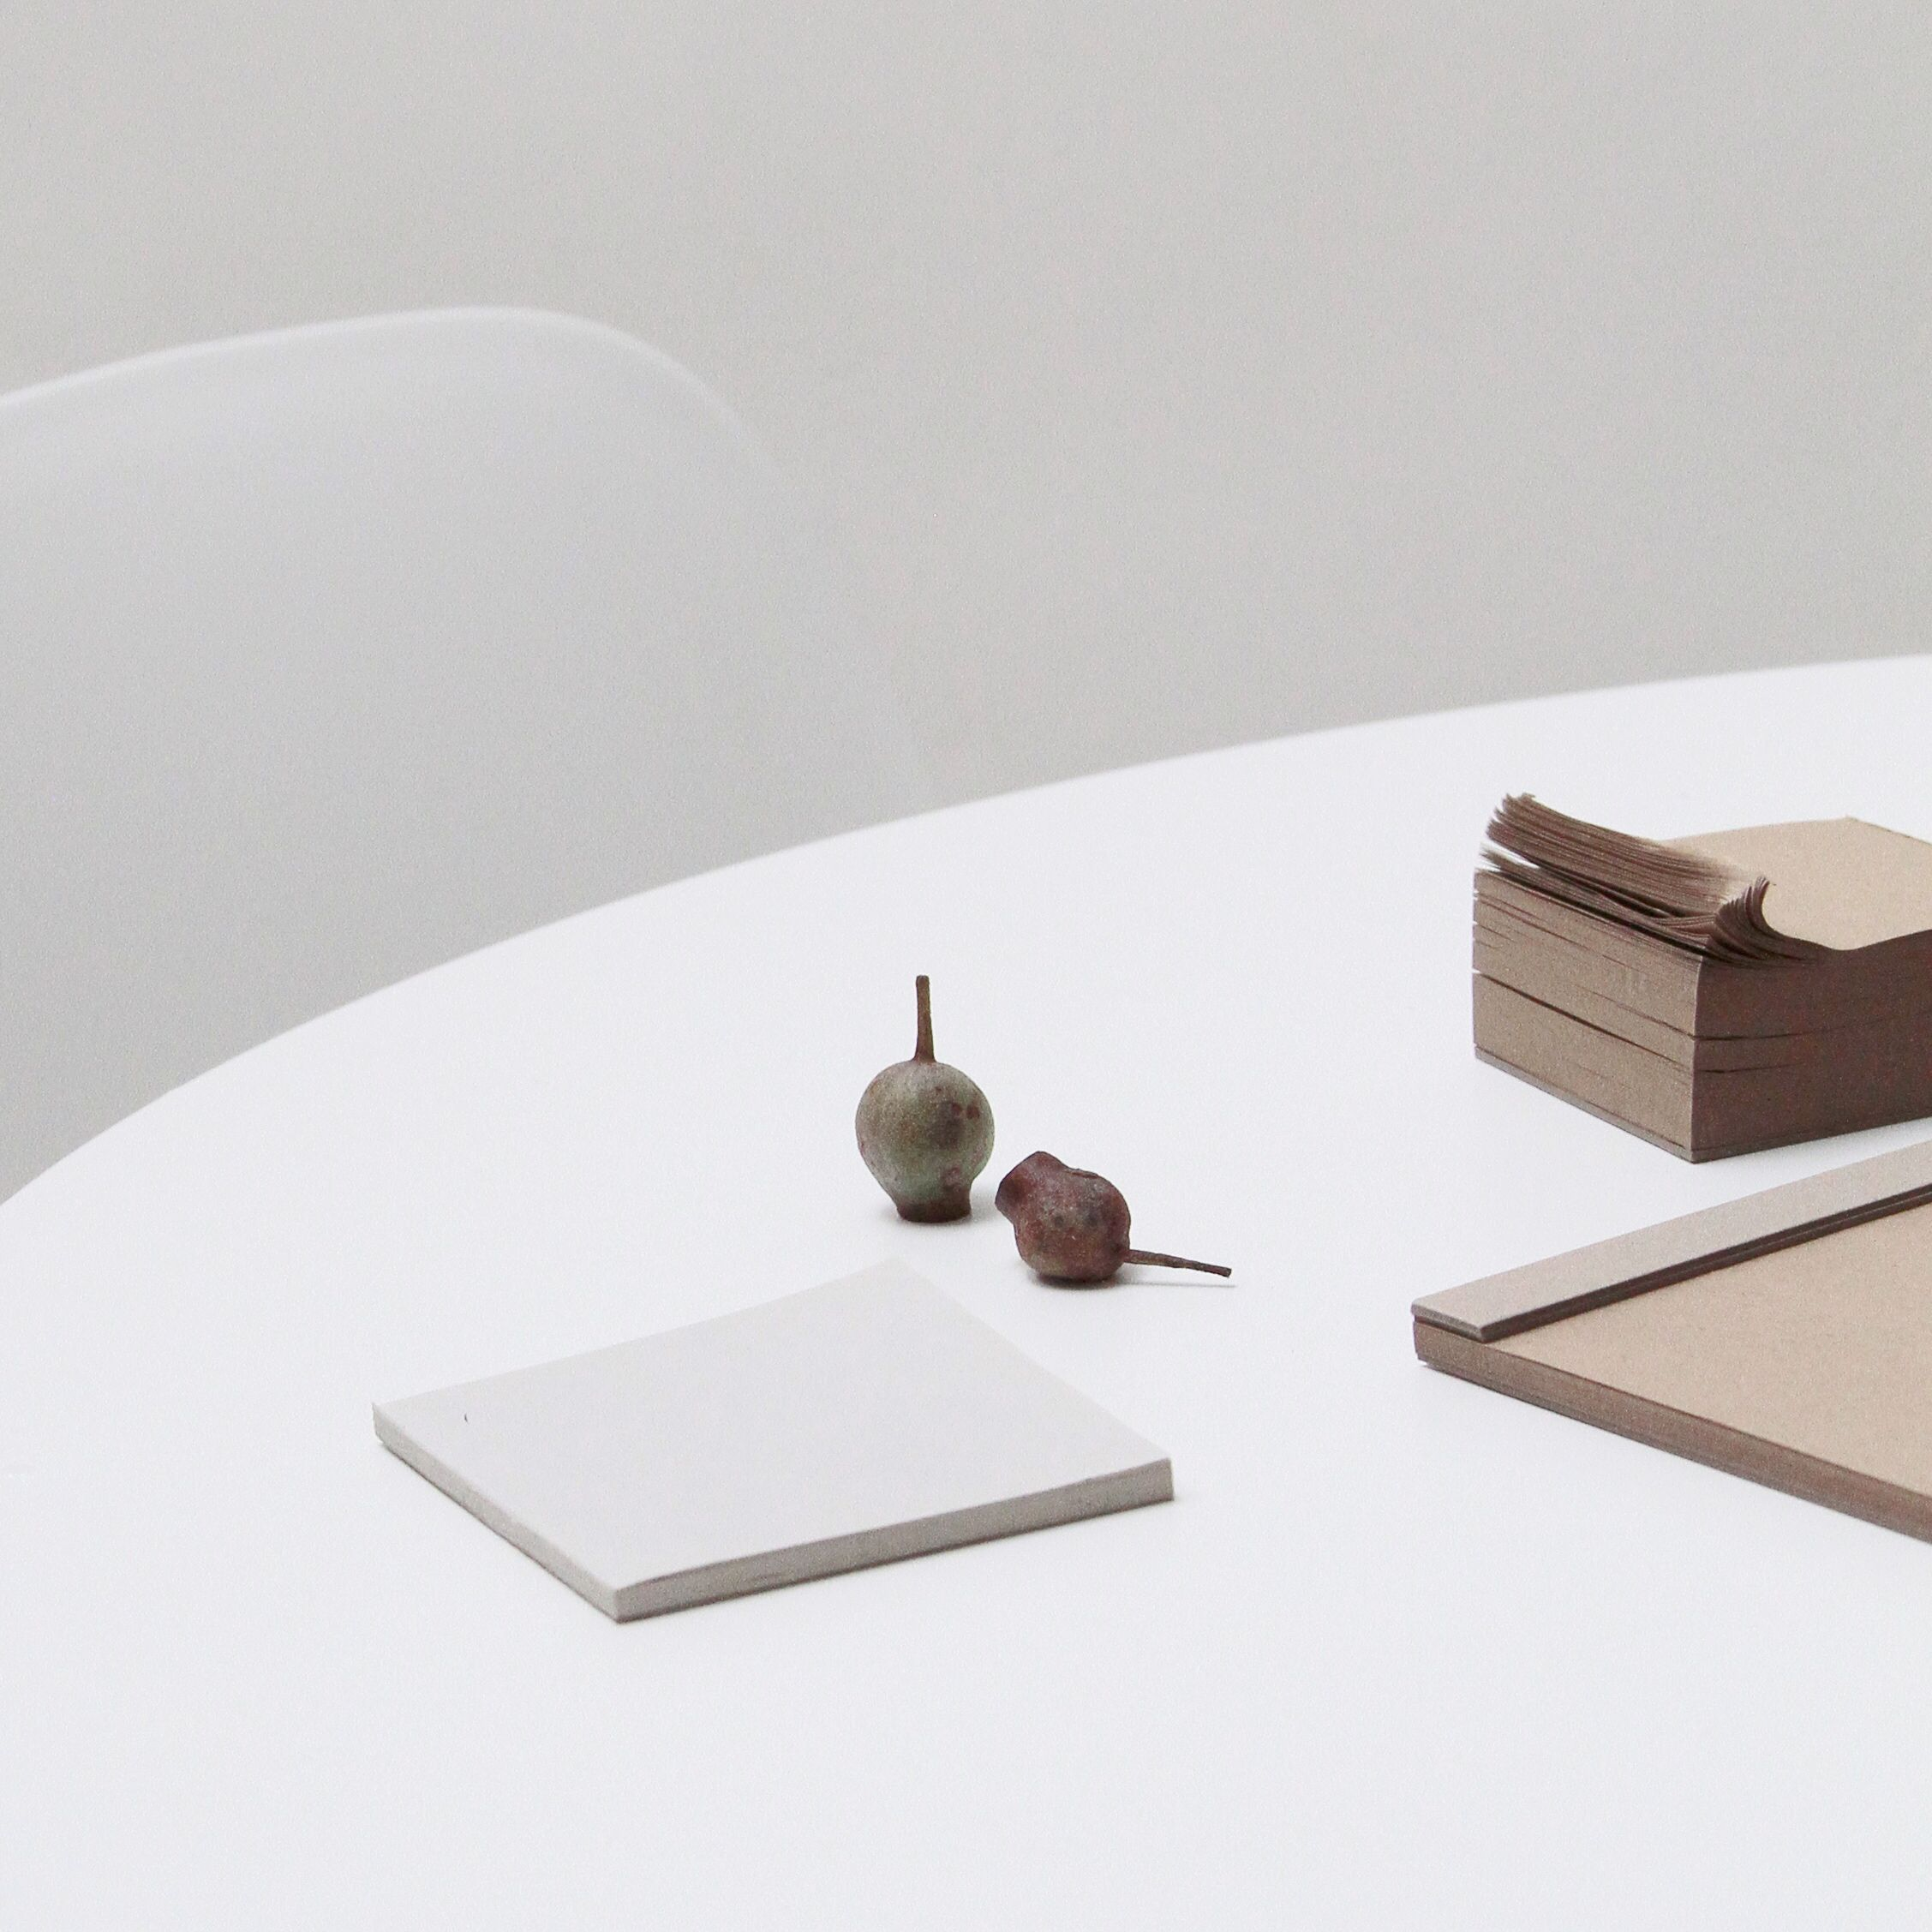 Minimalist Table Table Top Minimal Flat Lay Curated By Ajaedmondcom